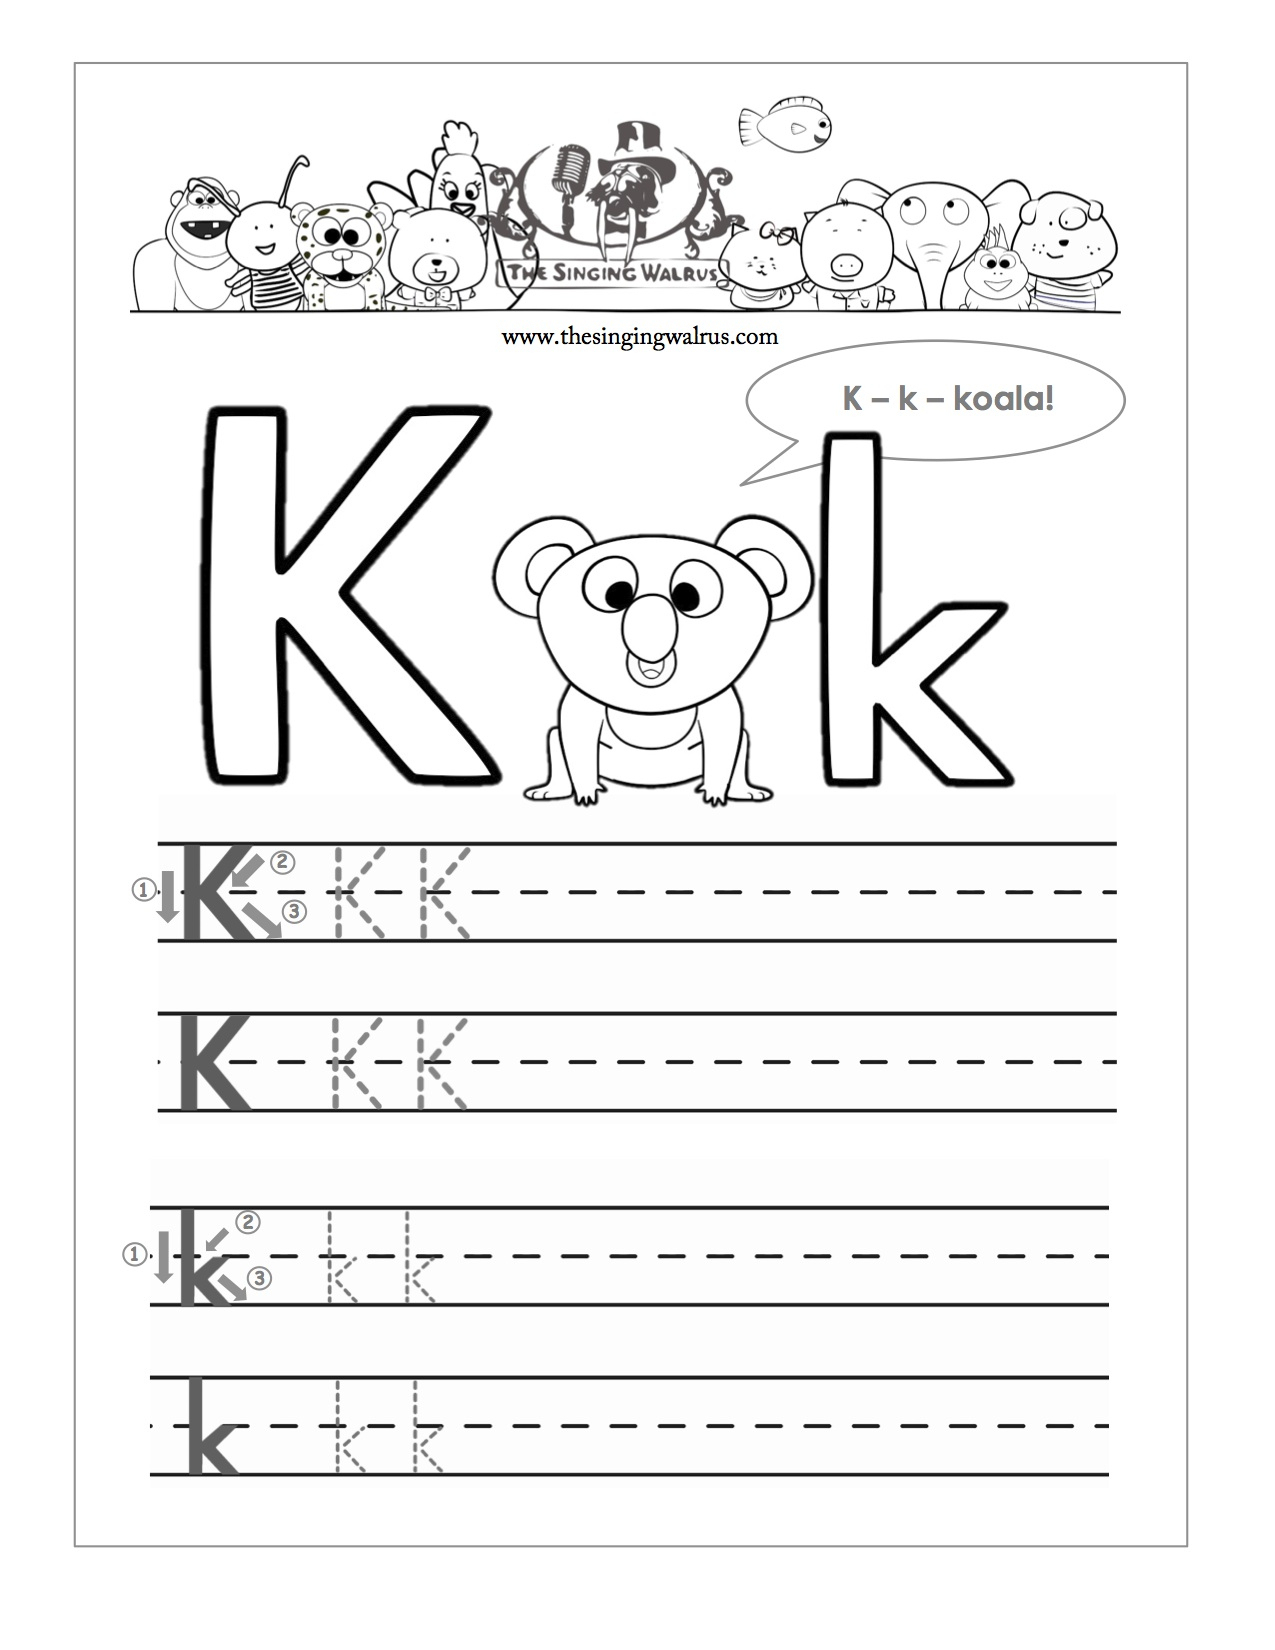 15 Learning The Letter K Worksheets | Kittybabylove | Free Printable Letter K Worksheets